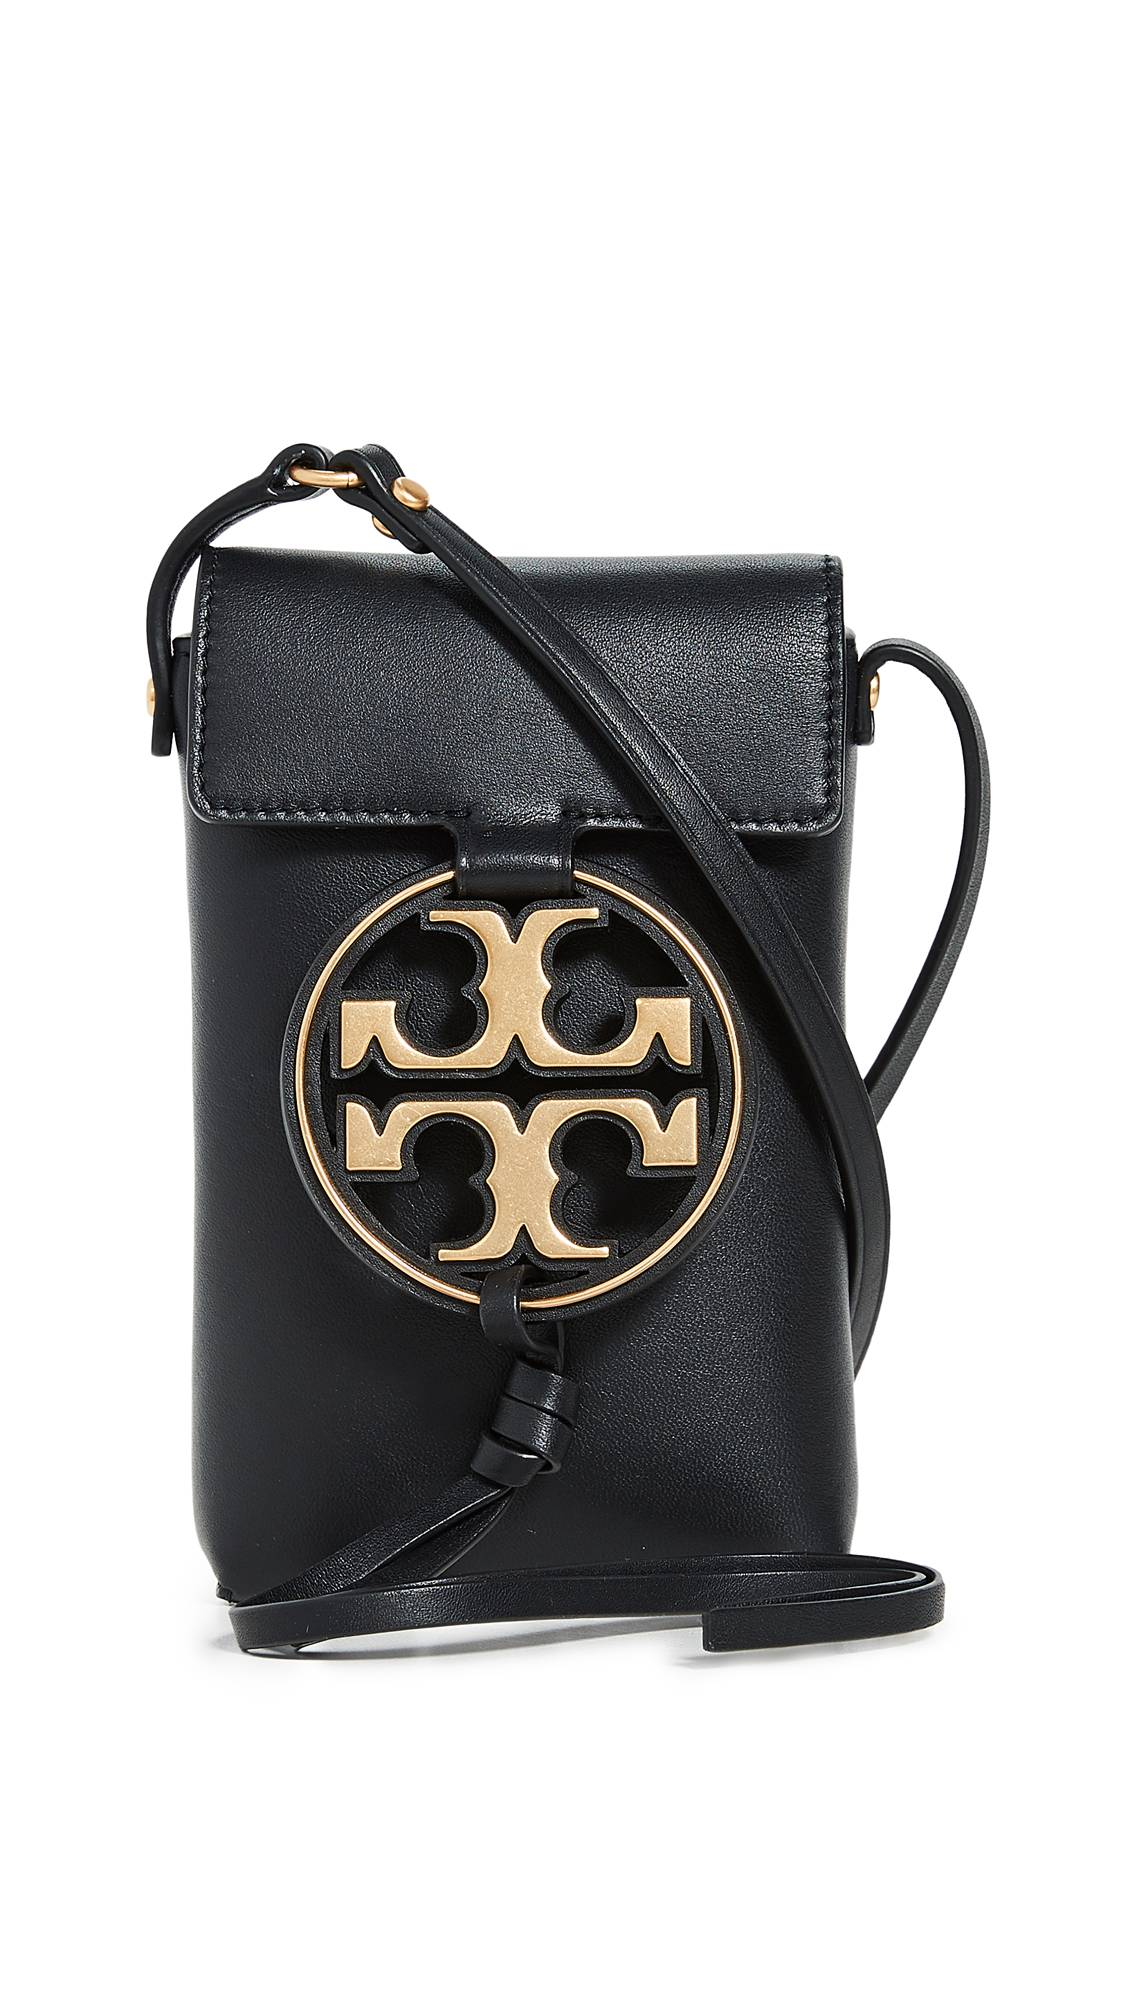 Tory Burch Miller Metal Phone Crossbody  - Black - Size: One Size